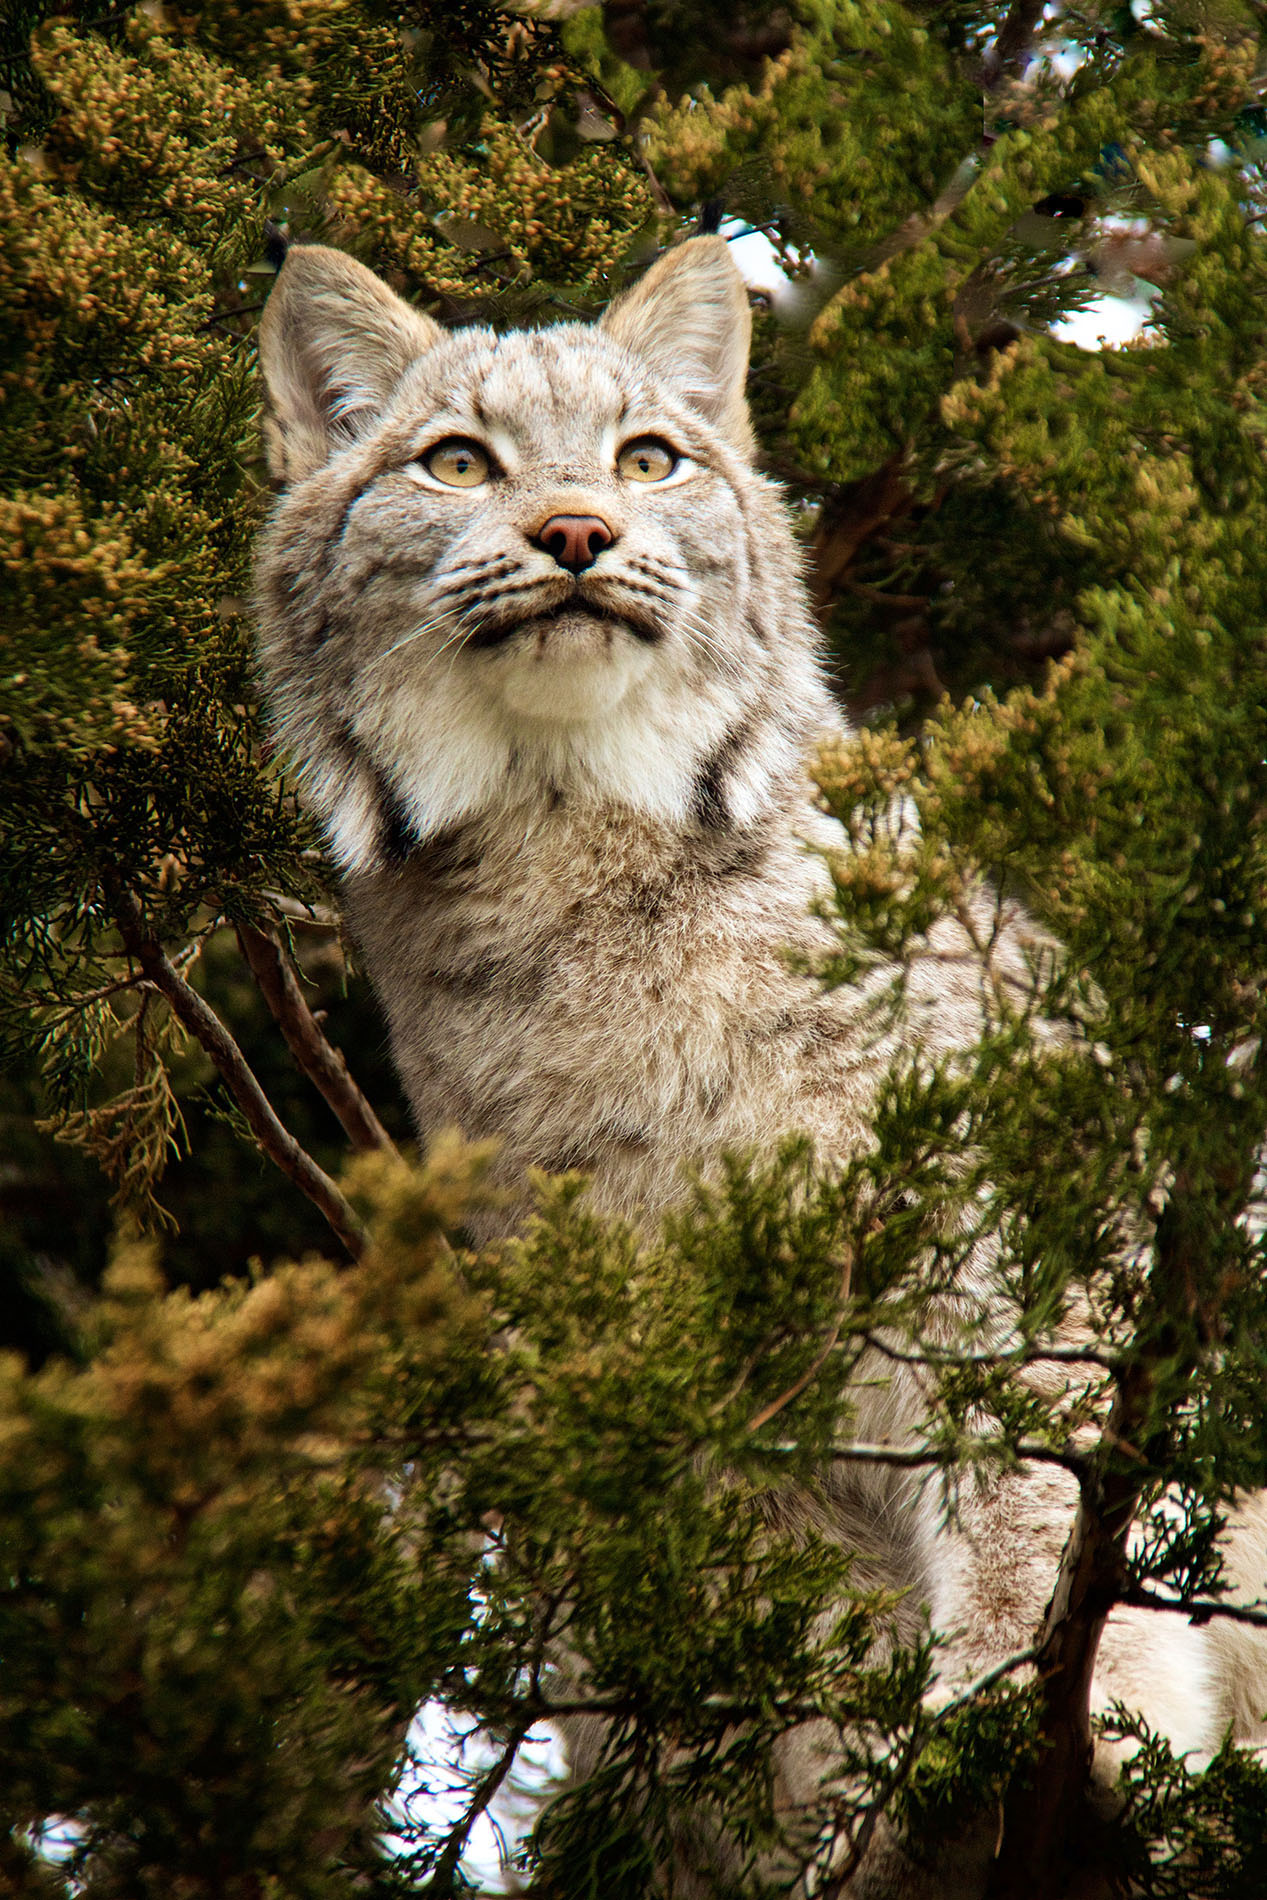 Lynx on Lookout - Color Print(Open) - Name Withheld Per Request